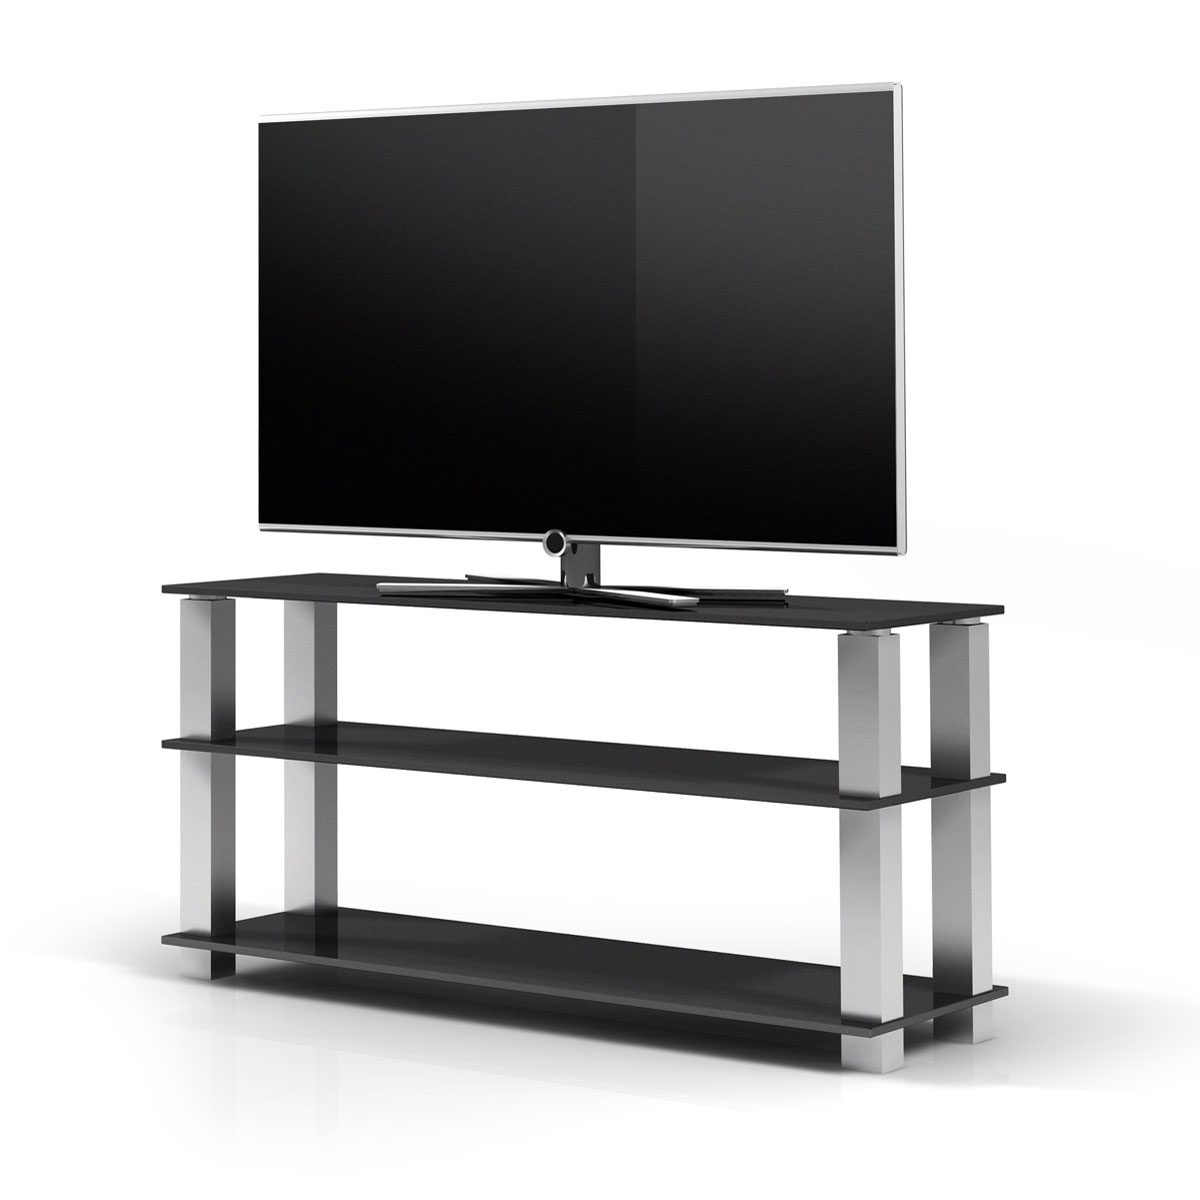 multimedia heimkino m bel sideboards f r lcd plasma tv bei hifi tv seite 4. Black Bedroom Furniture Sets. Home Design Ideas